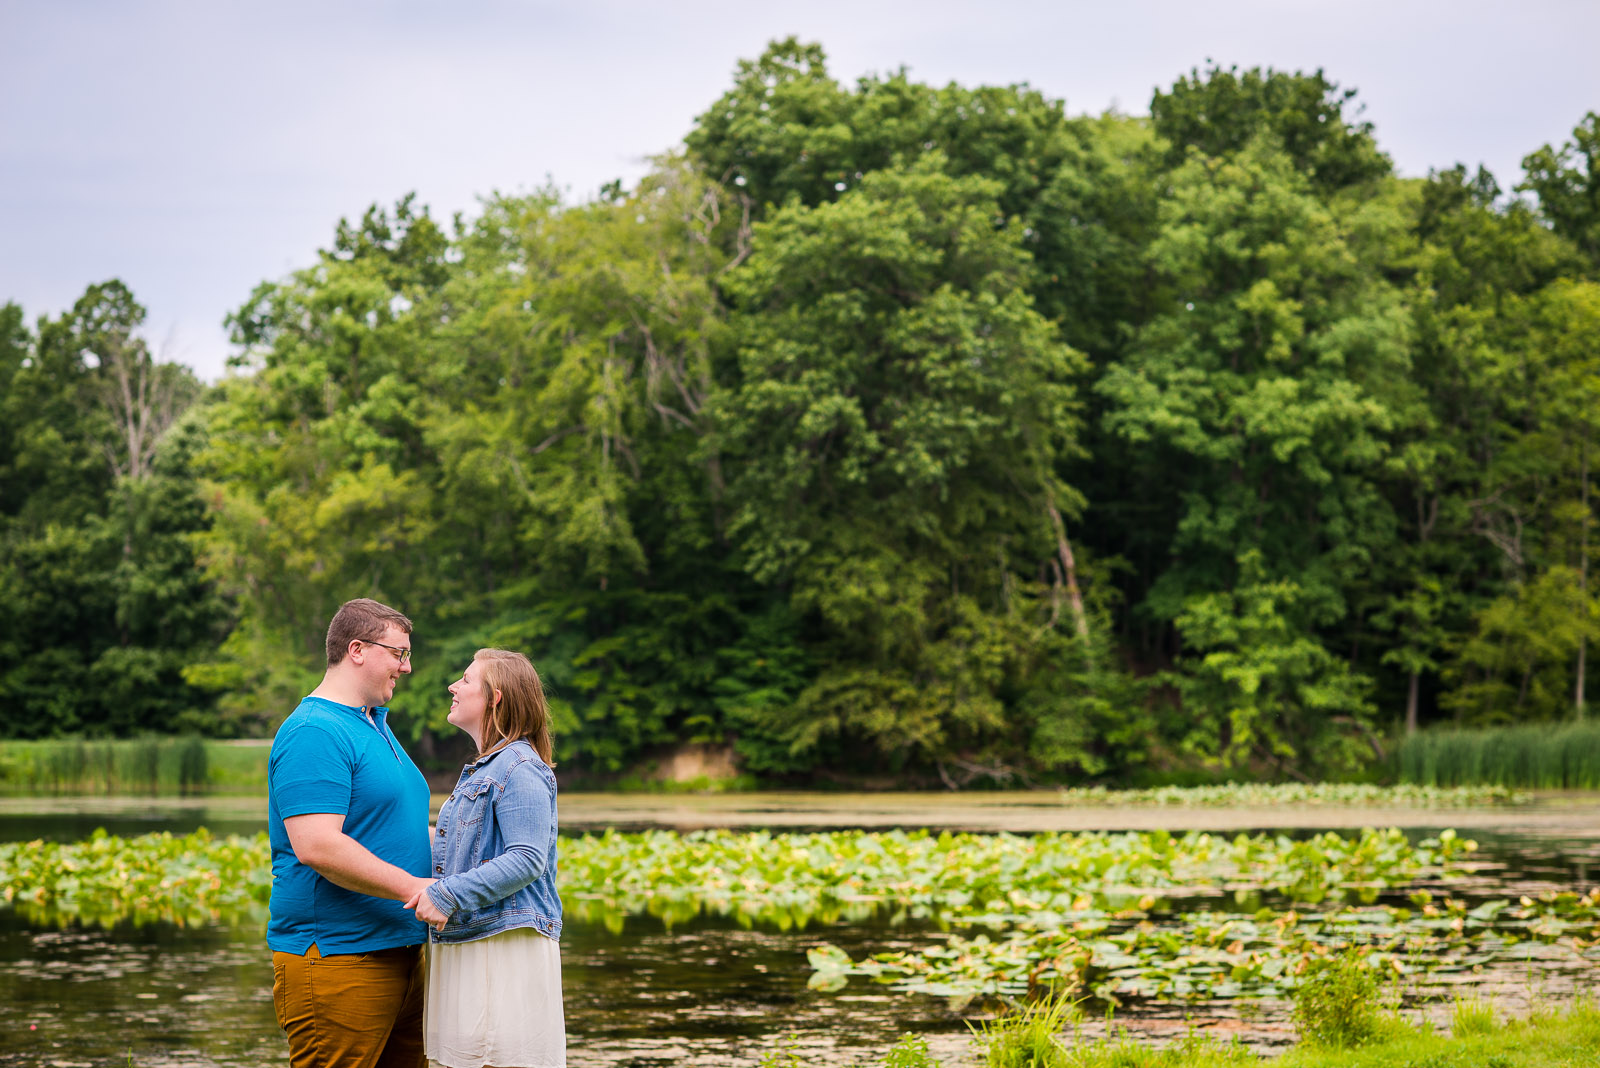 Eric_and_Christy_Photography_Blog_Karen_Nick-3